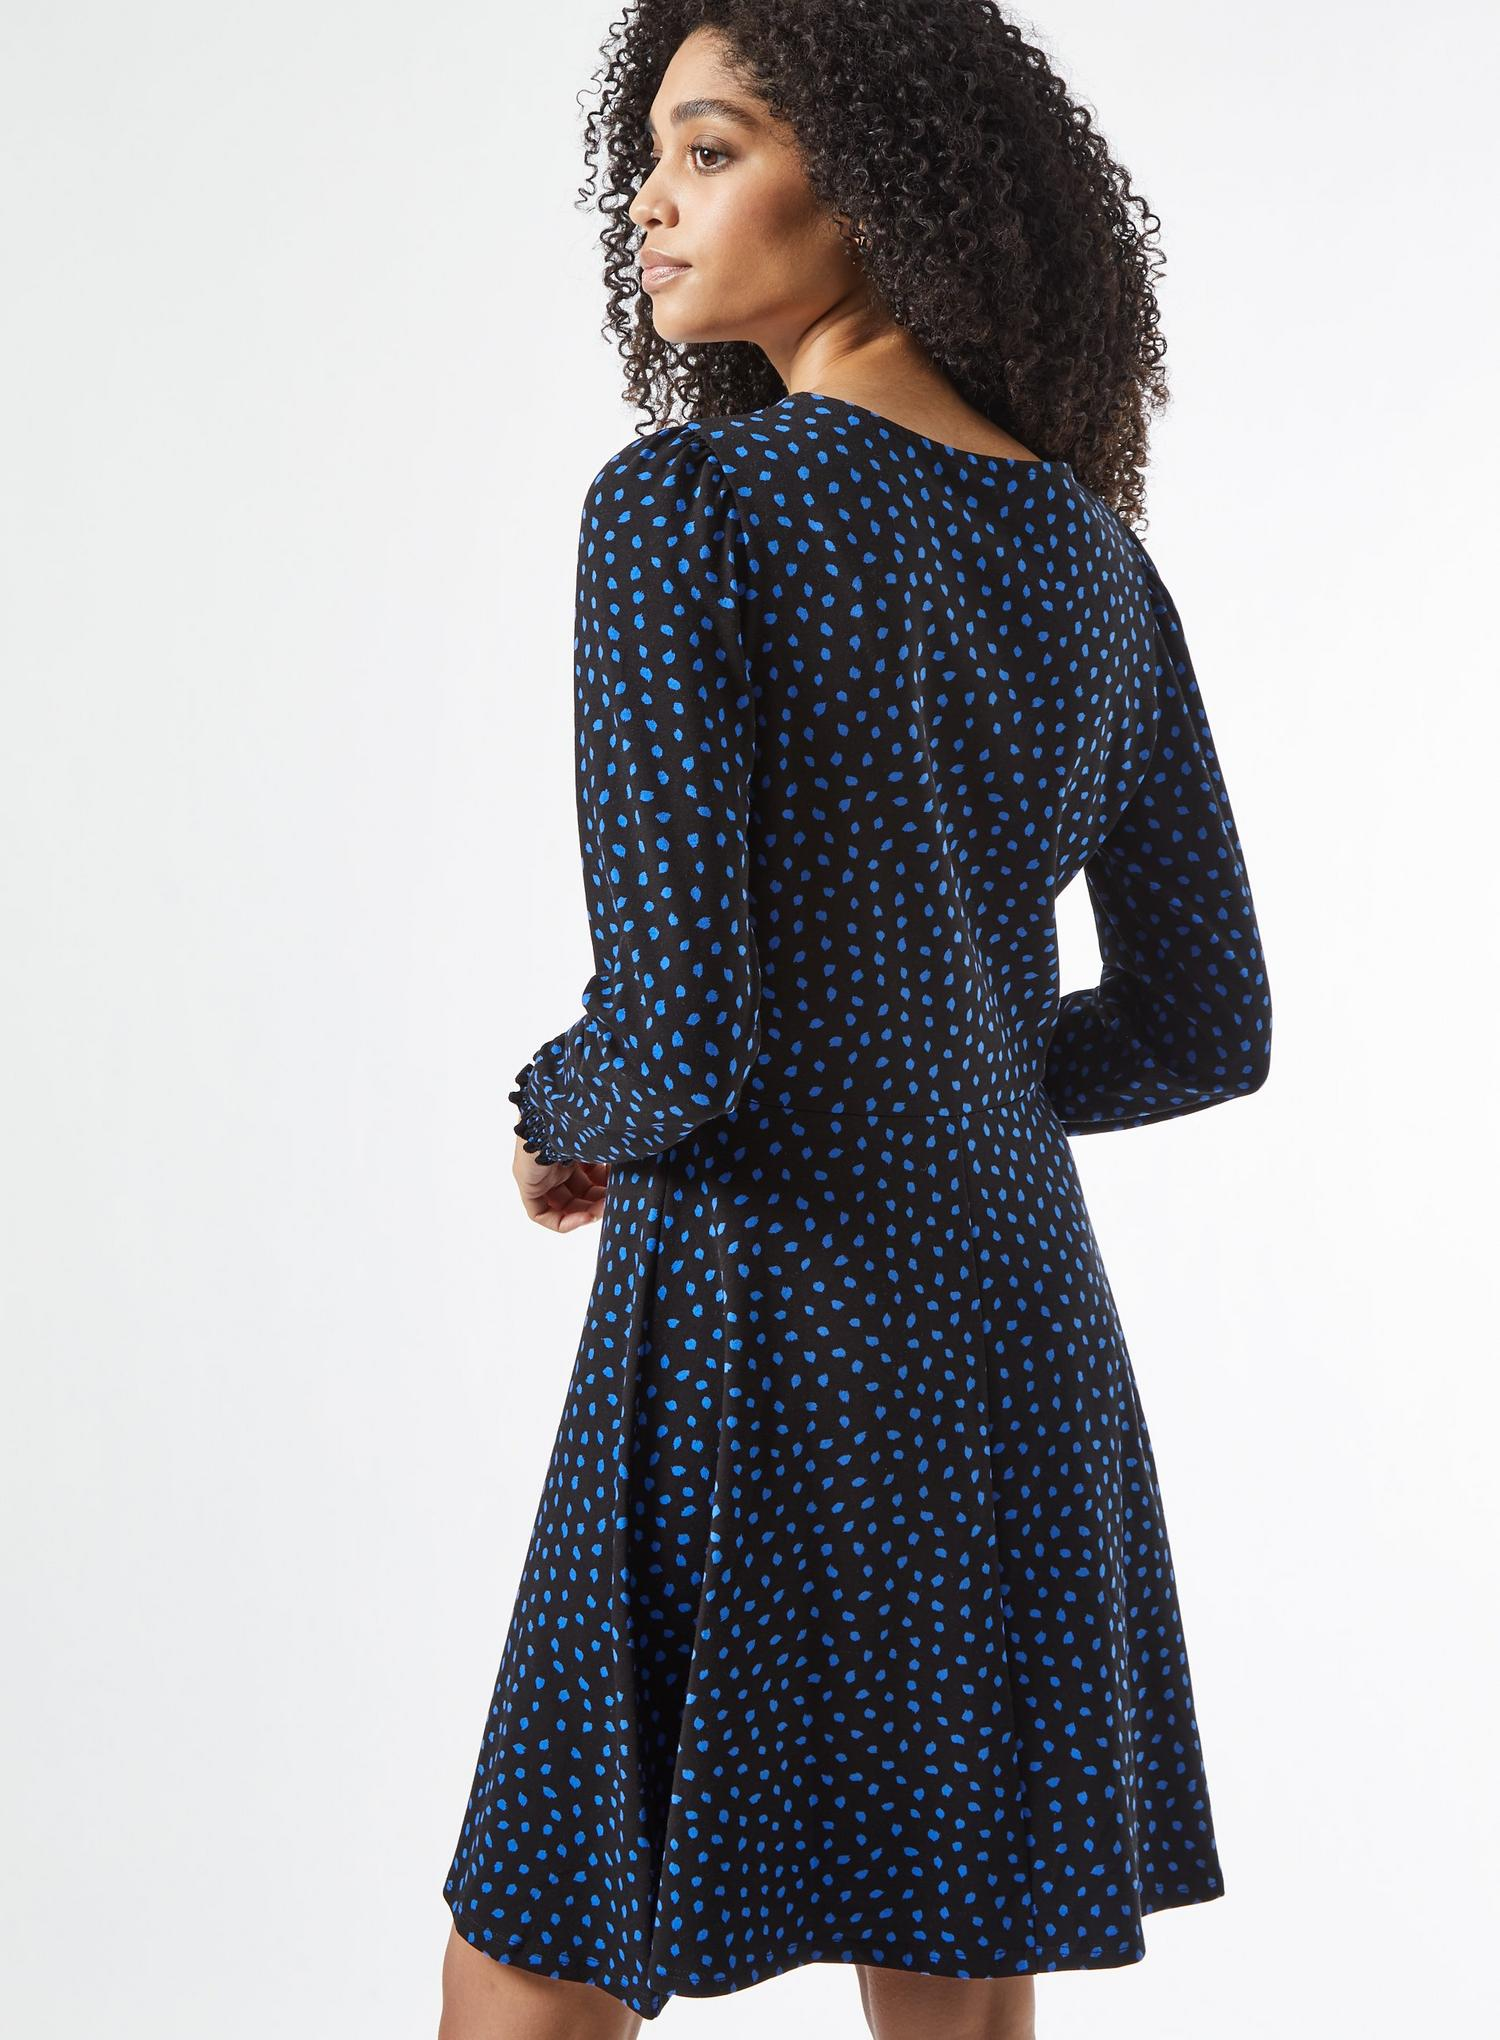 105 Blue Spot Print Organic Mini Dress image number 3